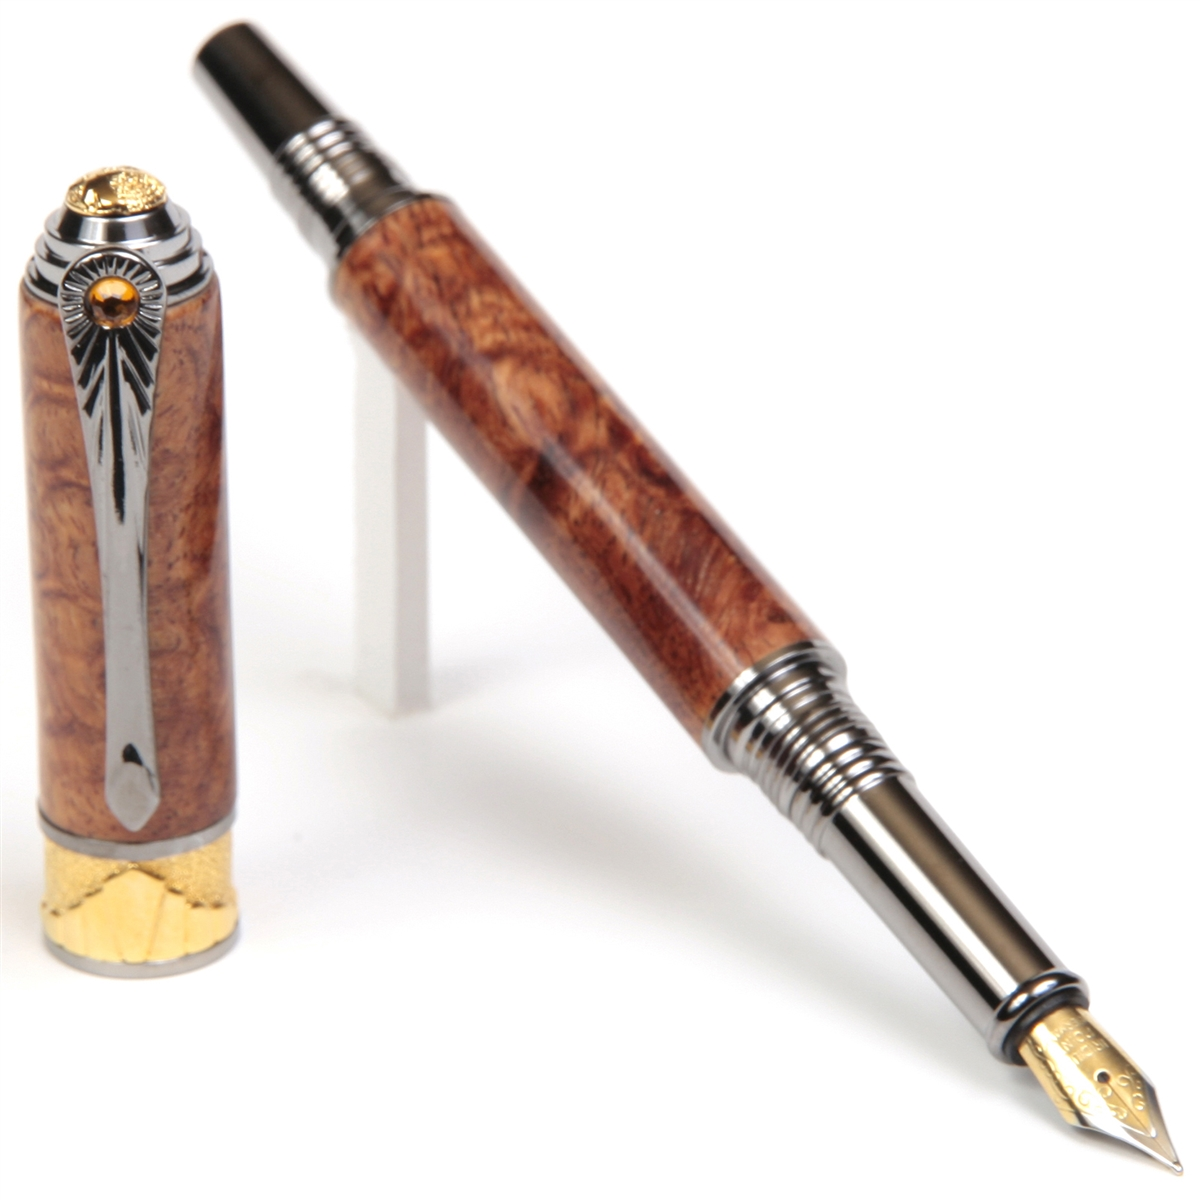 Art Deco Fountain Pen - Afzilia Snakeskin